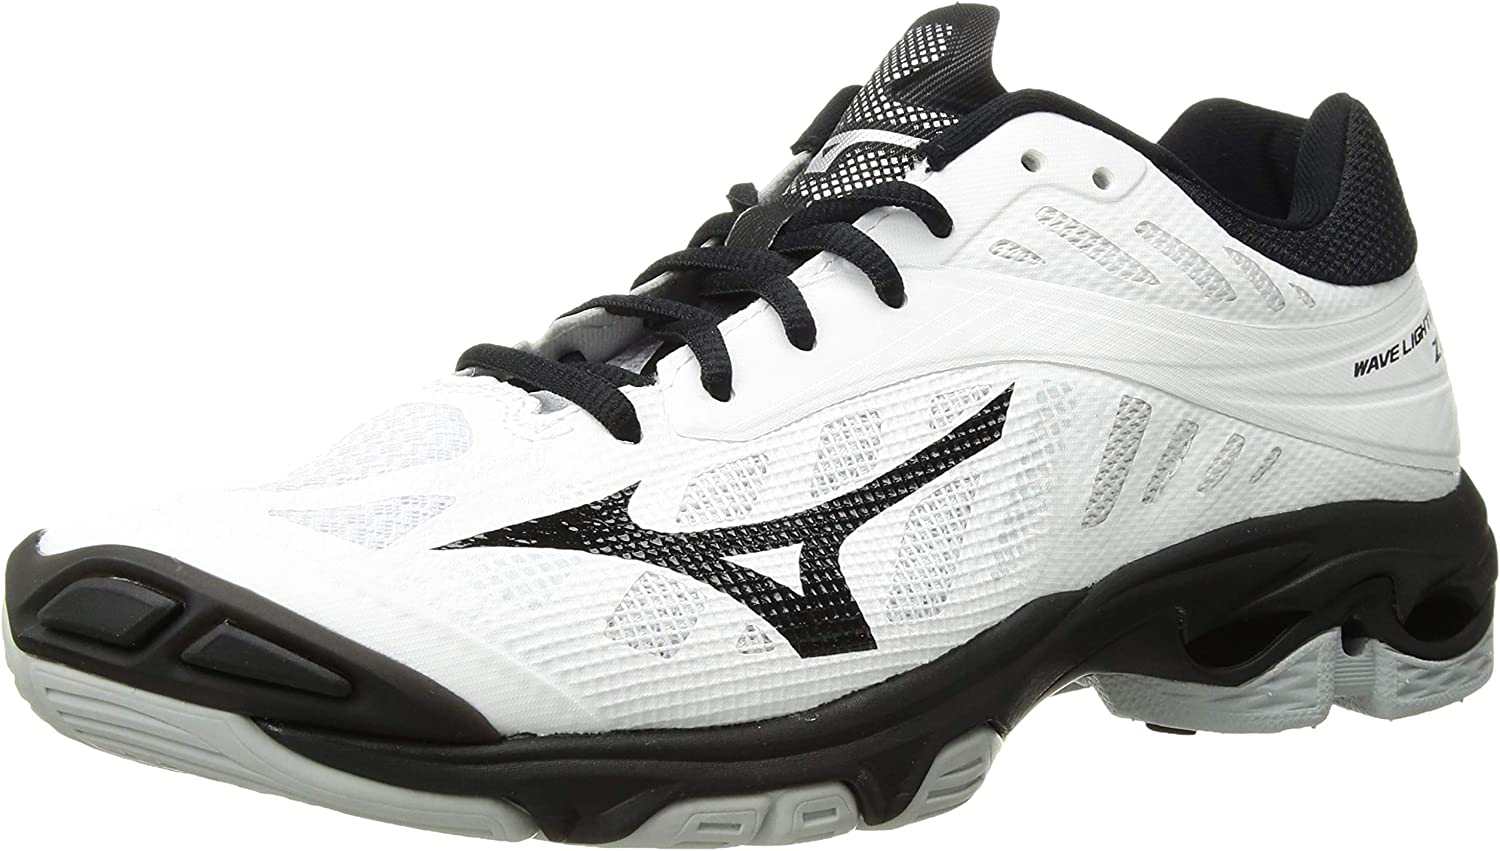 Mizuno High OFFicial shop quality new Men's Wave Lightning Mid Shoes Z4 Volleyball